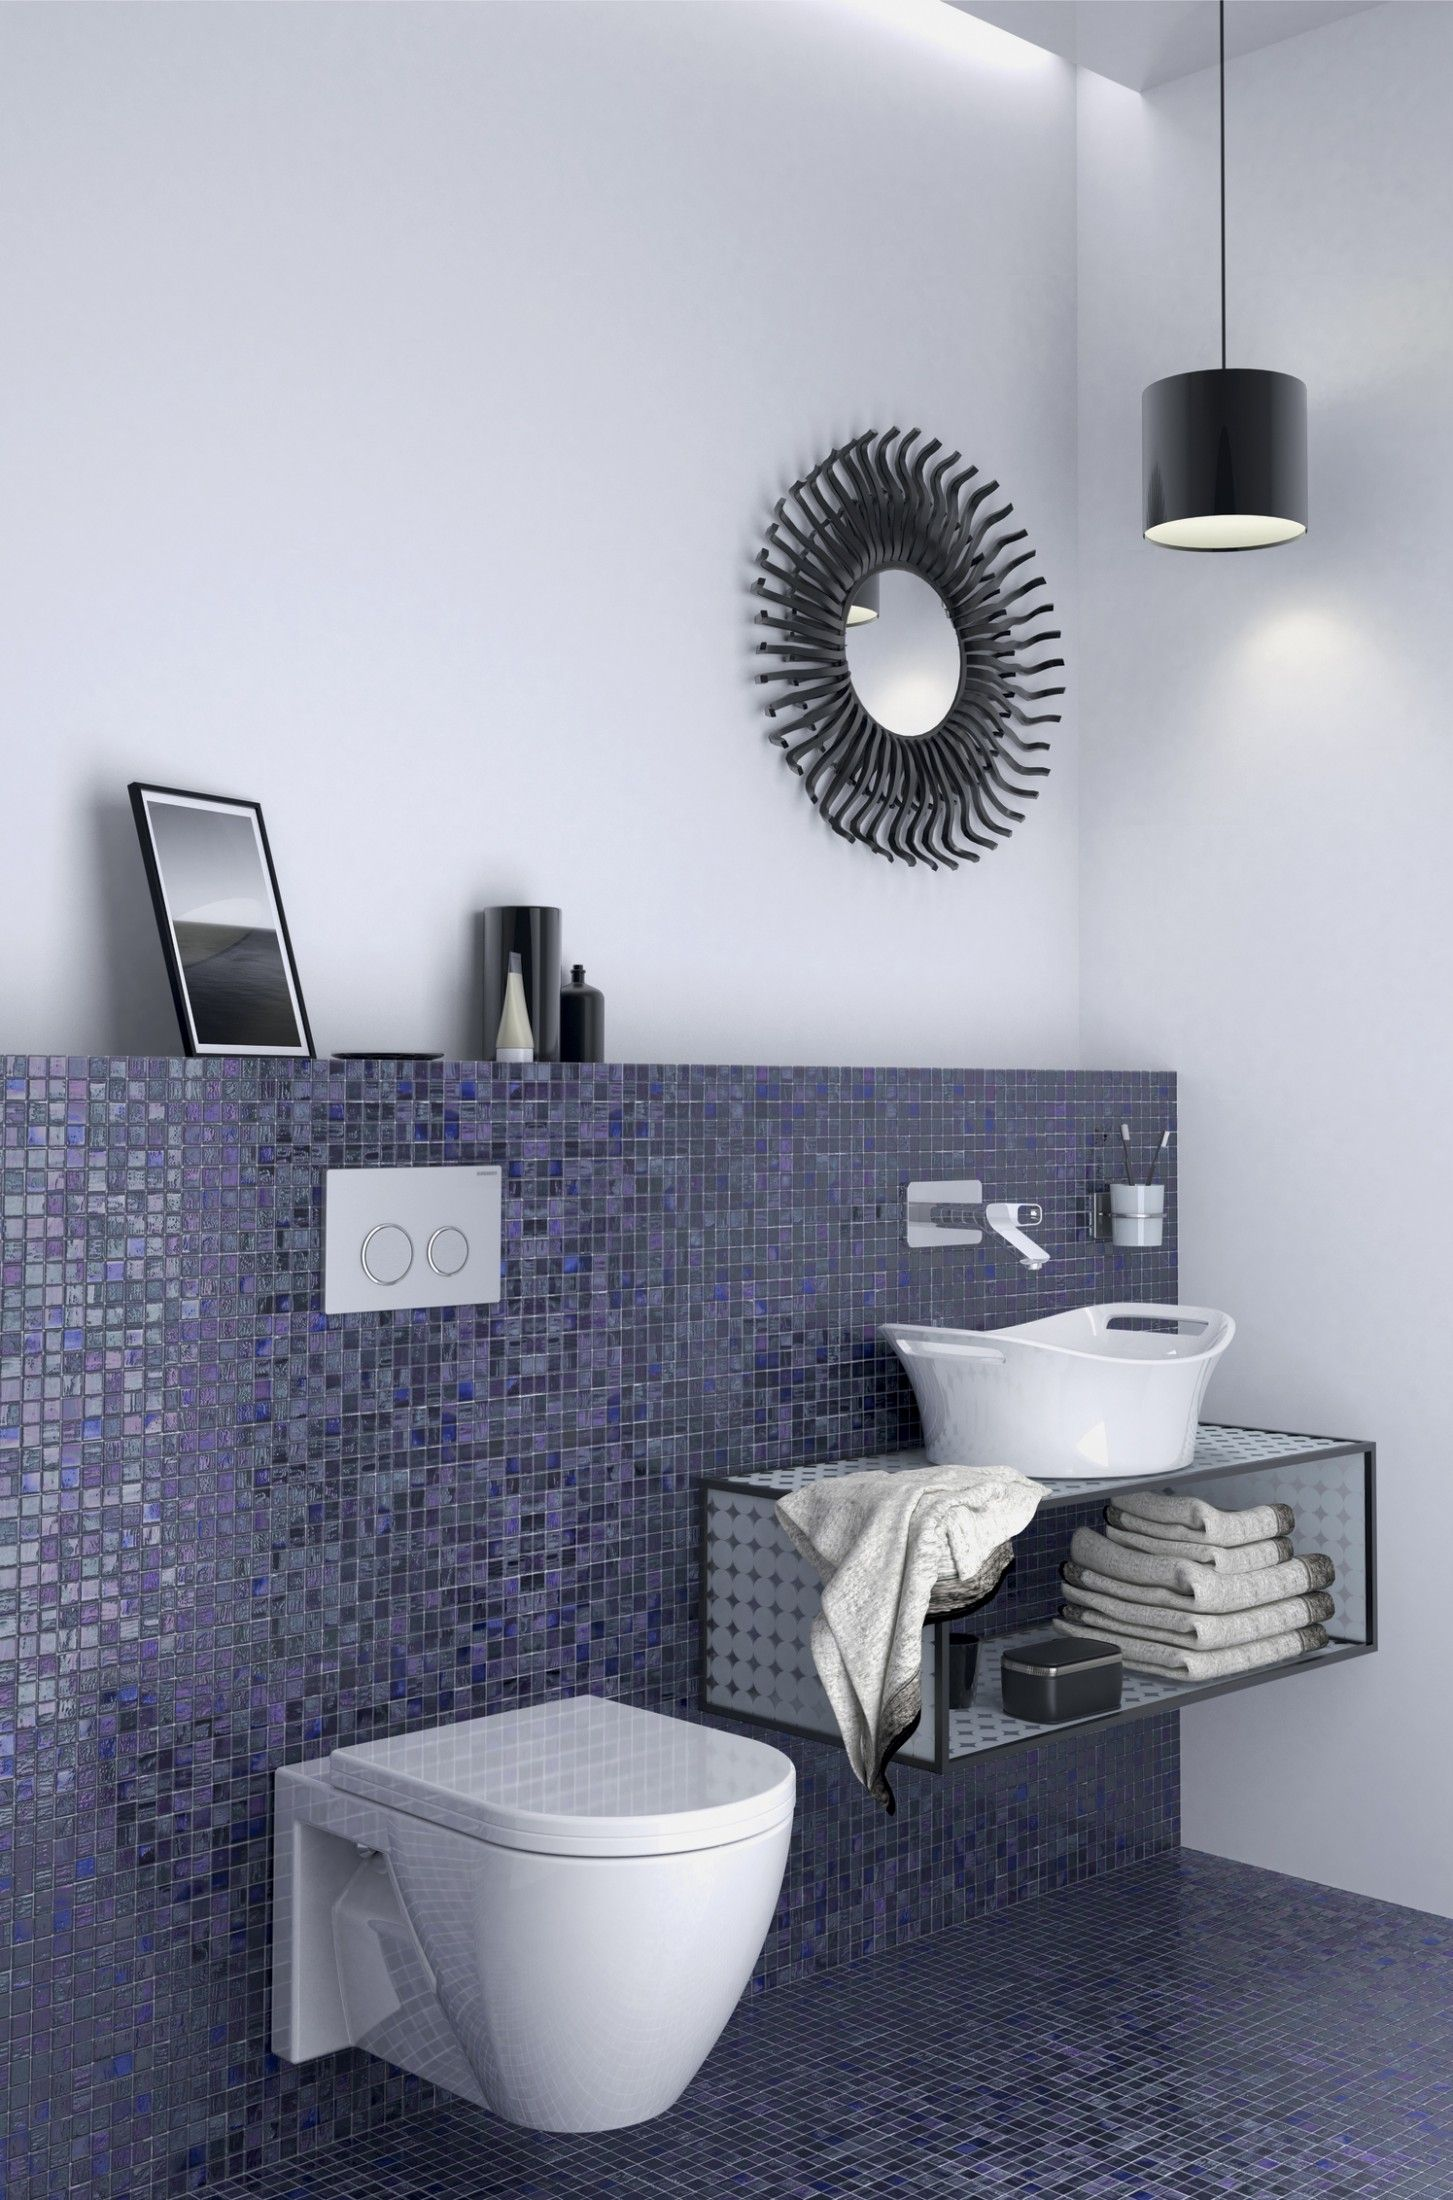 Contemporary Bathroom Design With Amazing In Wall Toilet